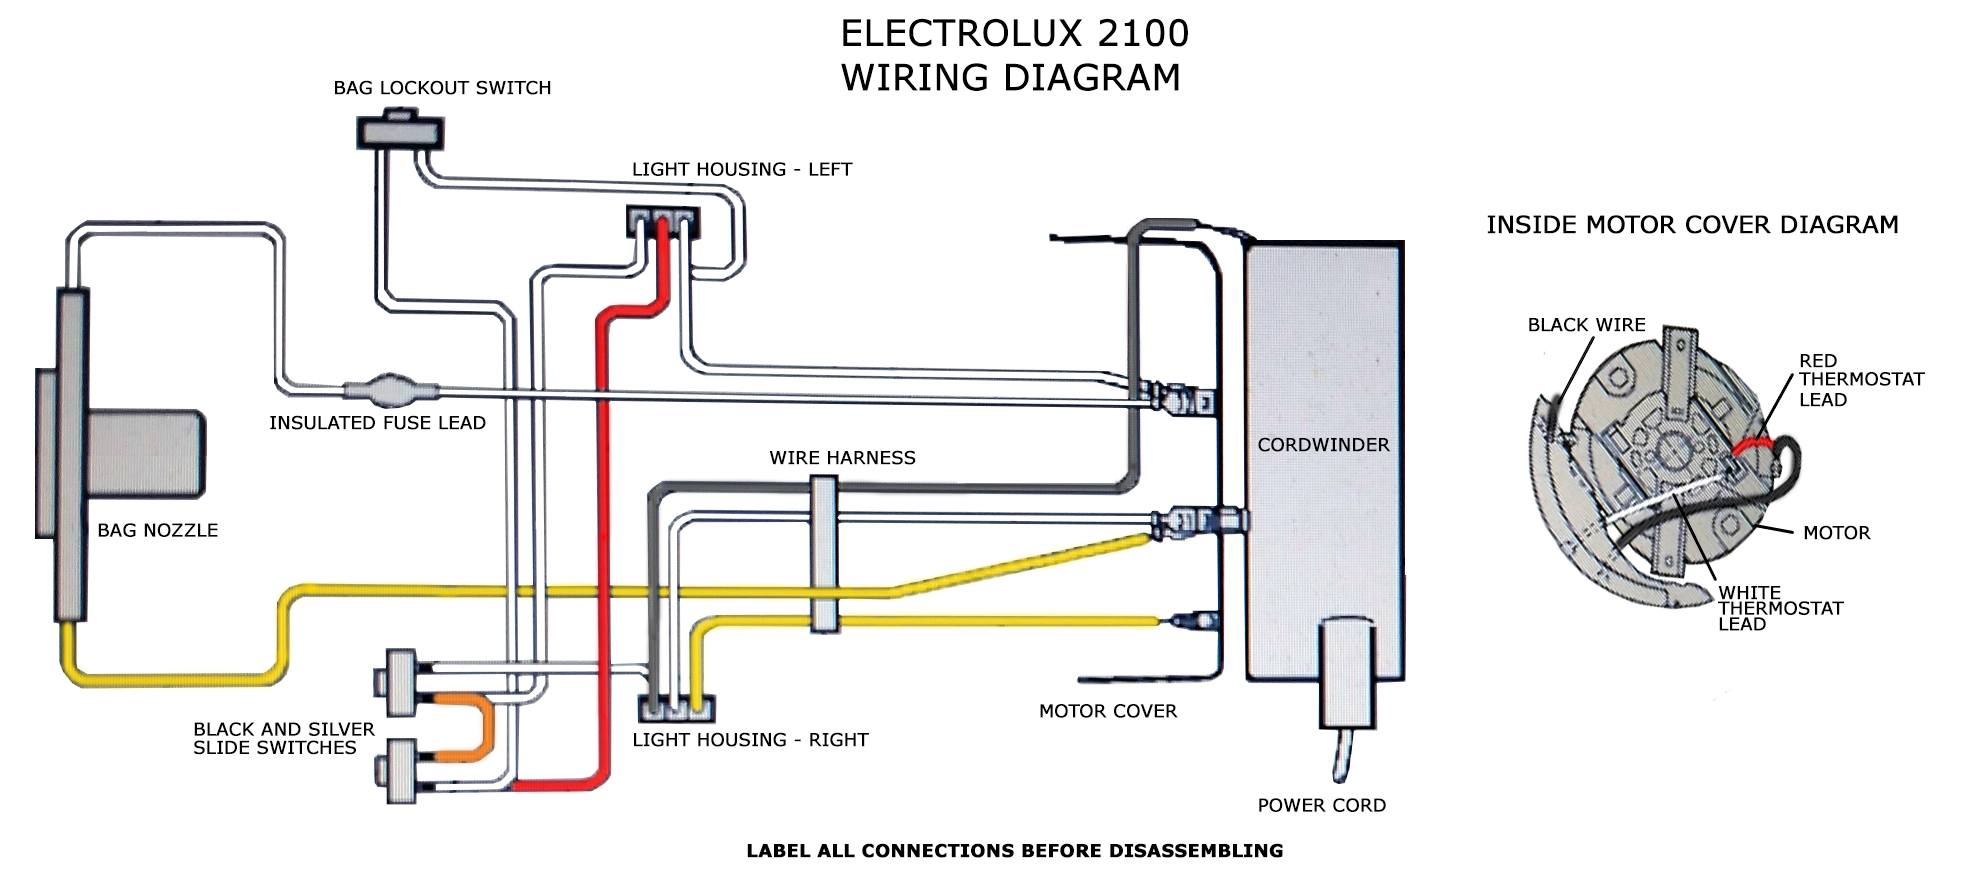 2100 wiring diagram miele vacuum wiring diagram osram wiring diagram \u2022 wiring diagram filter queen wiring diagram at soozxer.org